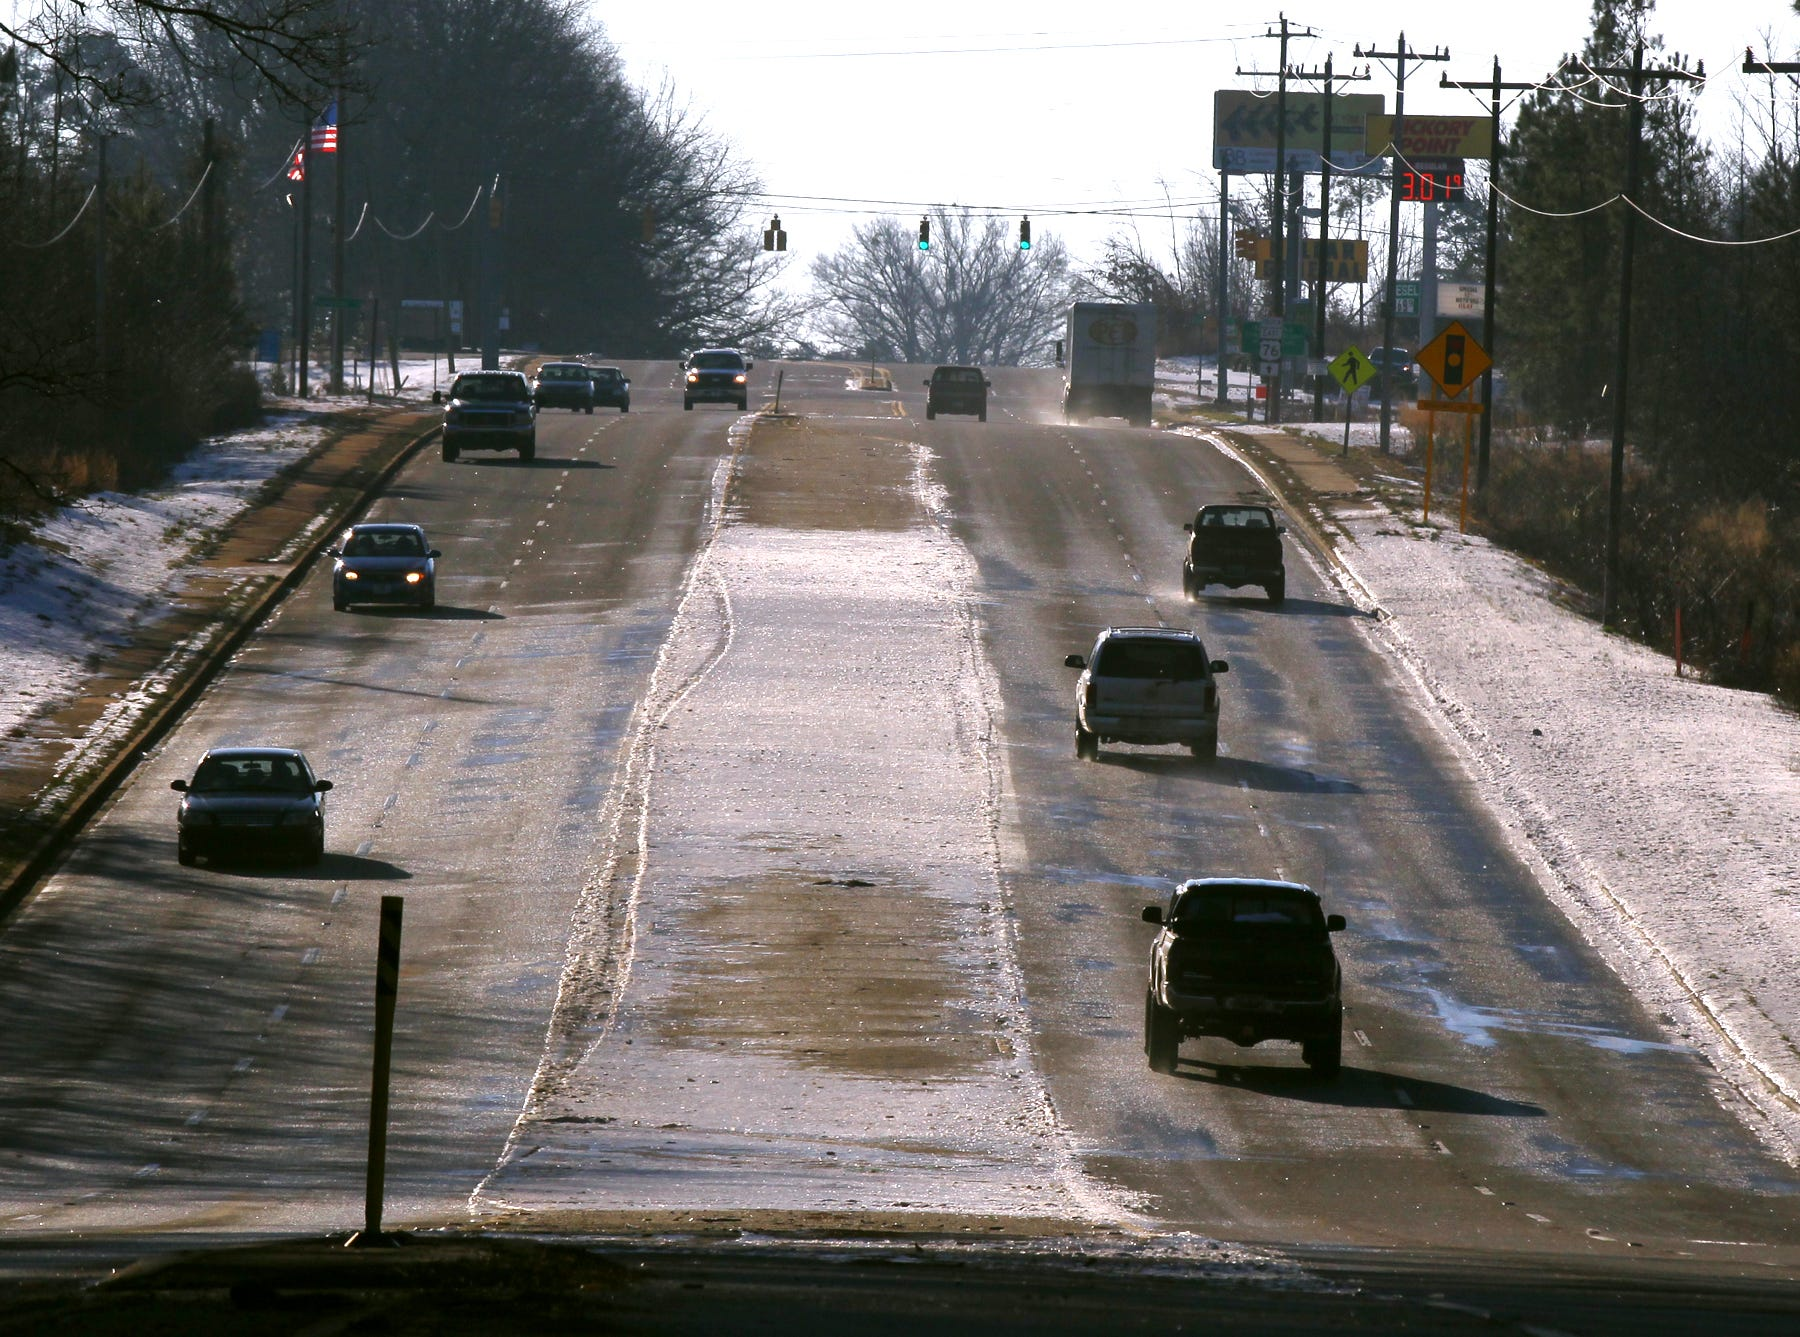 Cars drive over black ice and melted snow on the Belton Highway outside of the Anderson city limits in 2014.